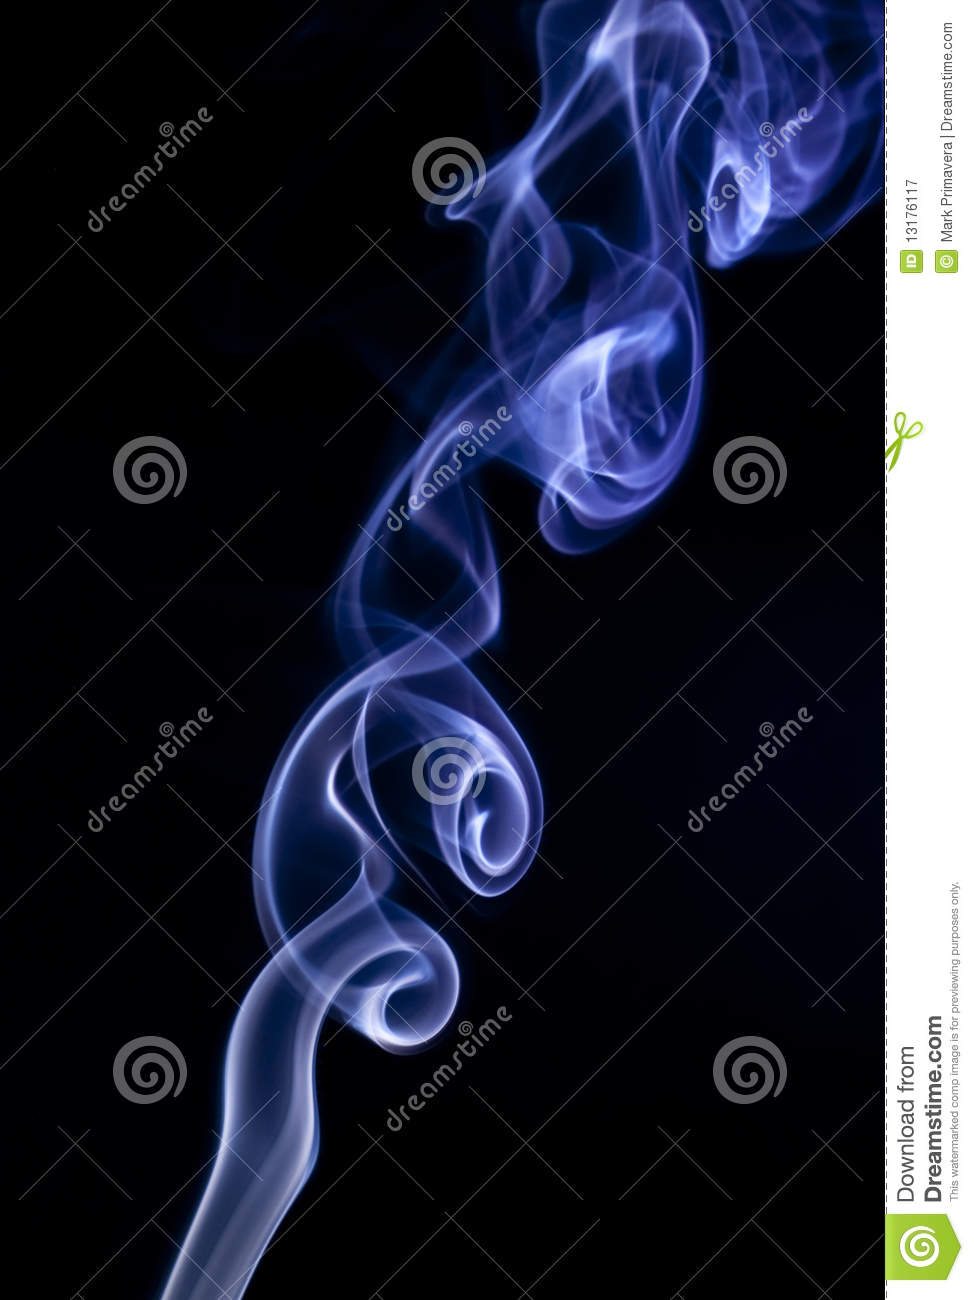 Artistic Blue Smoke Rings  5 Royalty Free Stock Photography   Image